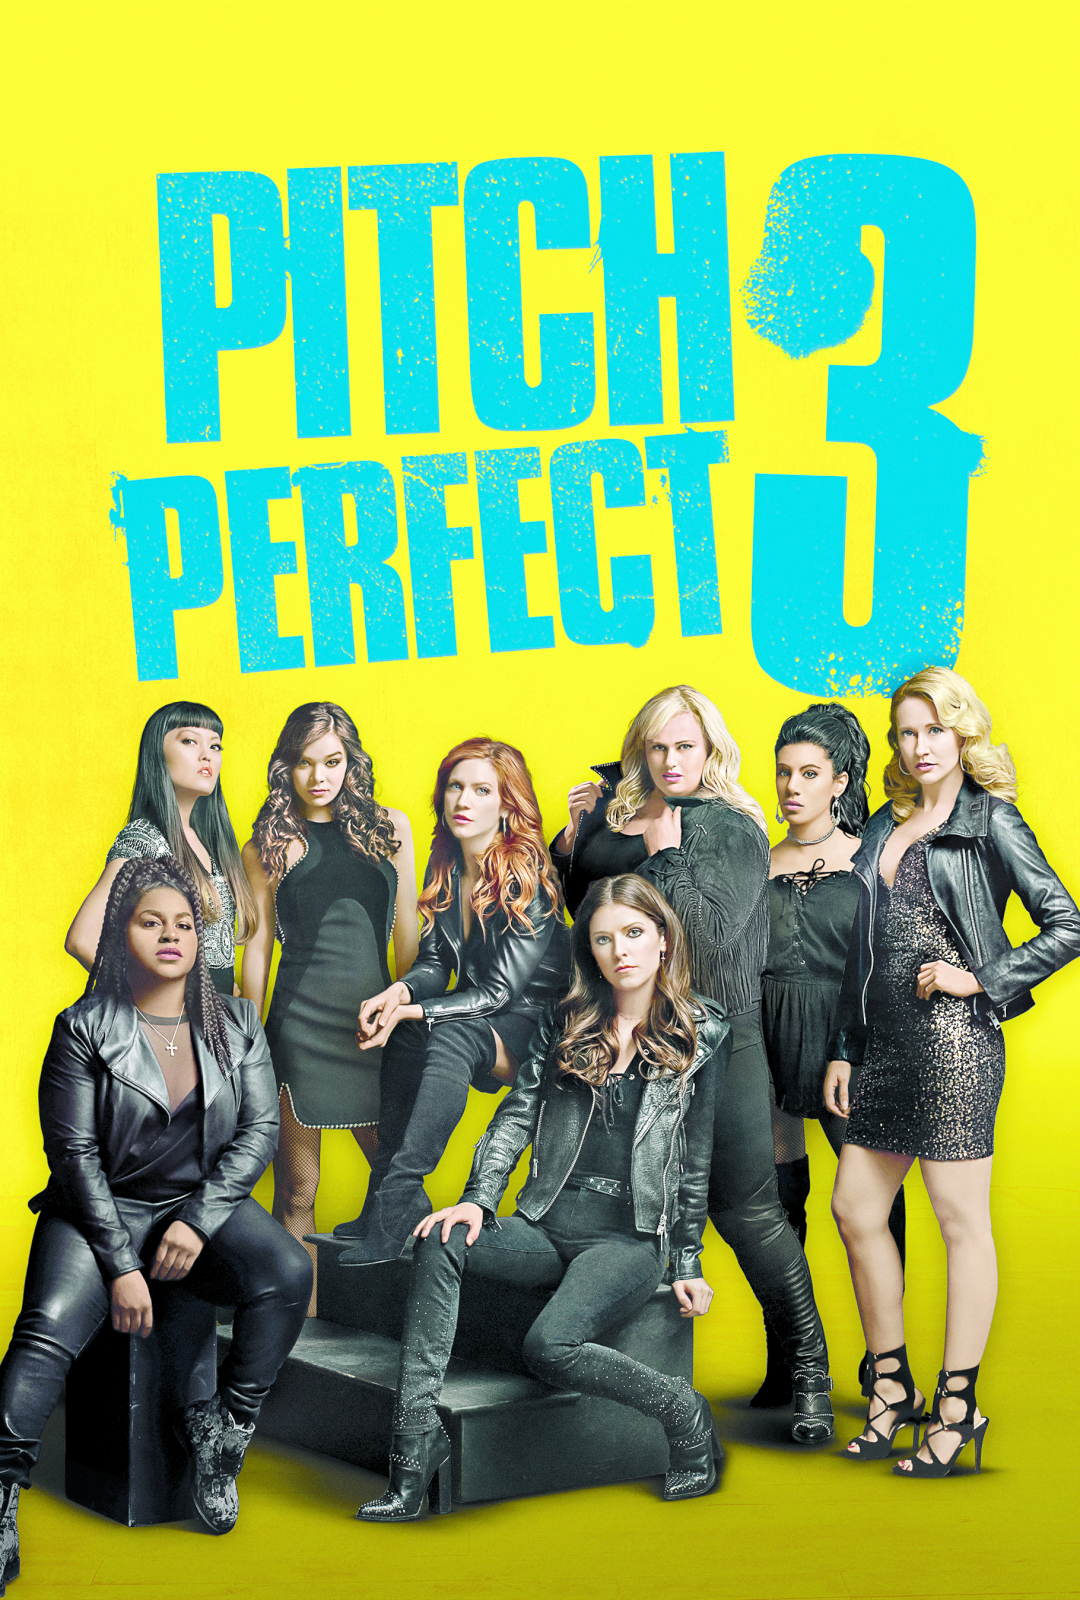 Nonton Pitch Perfect : nonton, pitch, perfect, Nonton, Pitch, Perfect, Subtitle, Indonesia